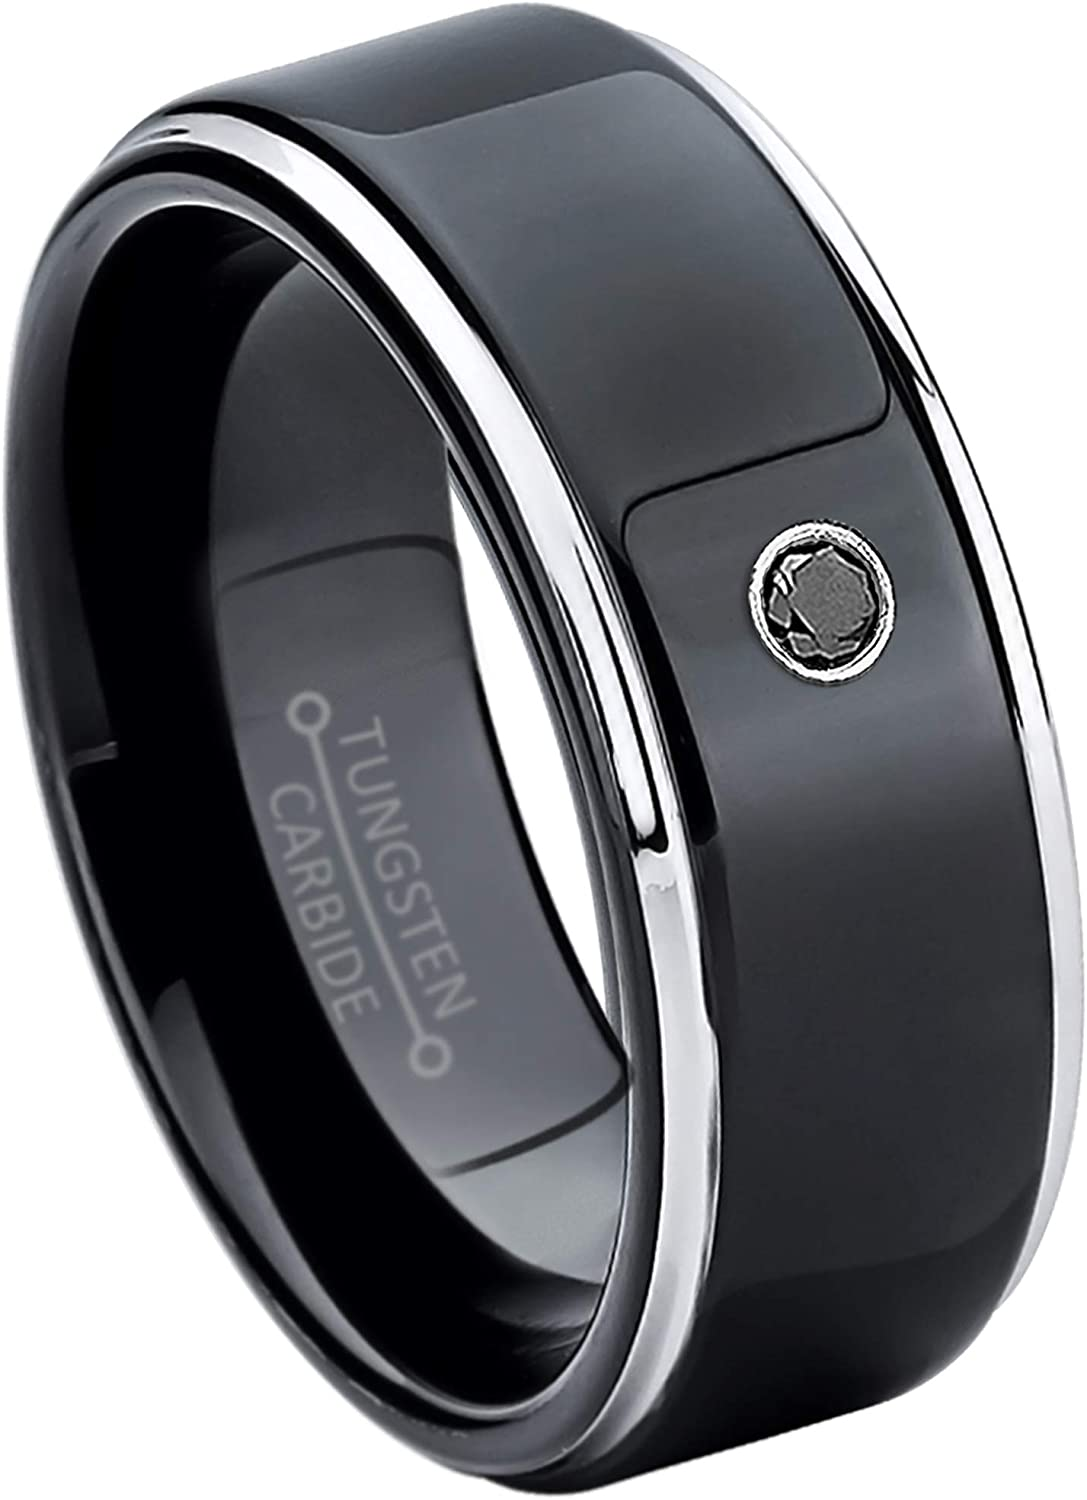 April Birthstone Ring 6MM Comfort Fit Brushed 2-Tone Black /& Rose Gold Stepped Edge Tungsten Carbide Wedding Band Jewelry Avalanche 0.07ct Black Diamond Tungsten Ring